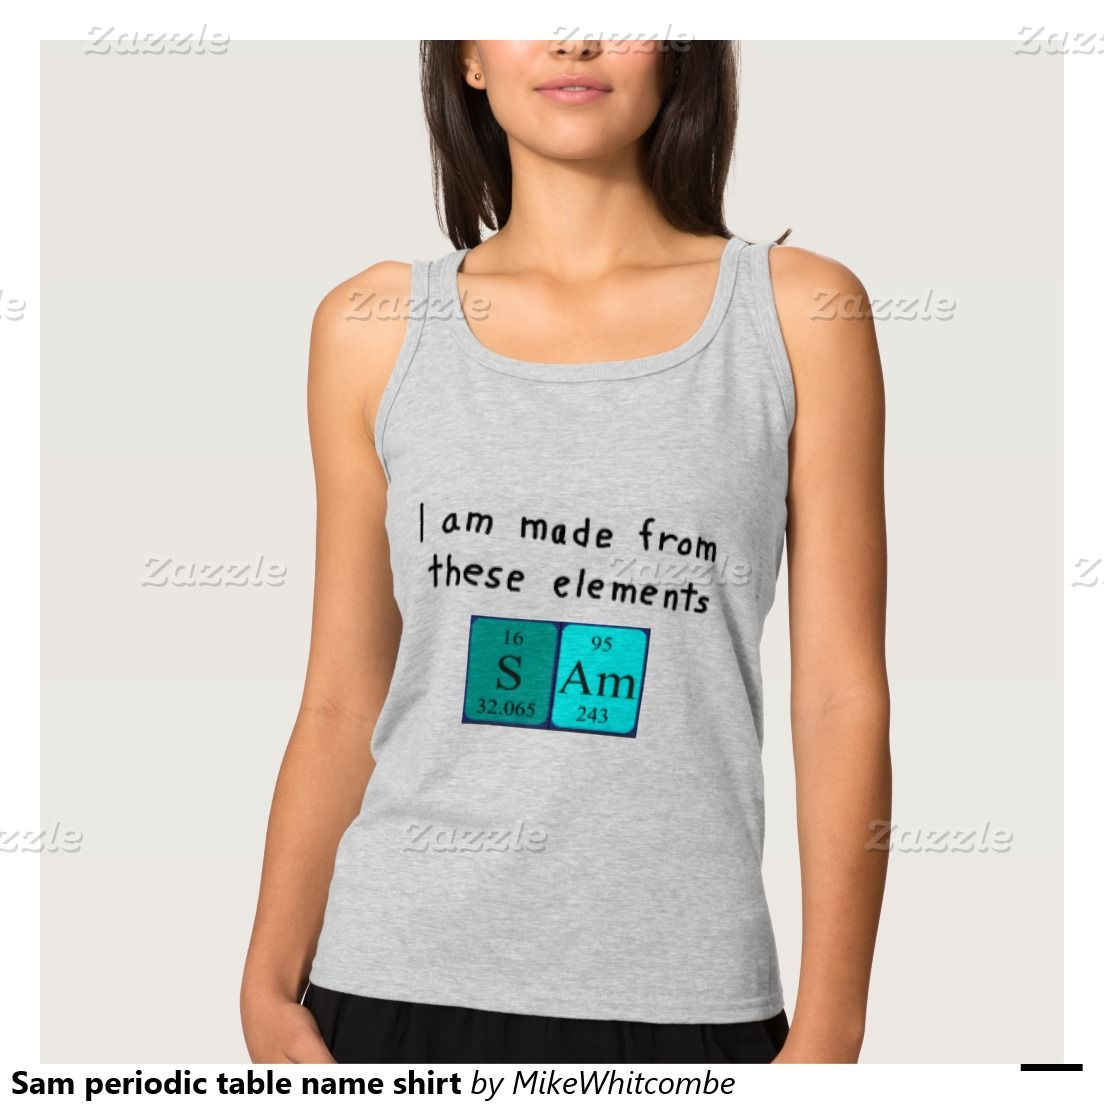 Sam periodic table name shirt shirts tables and table names sam periodic table name shirt gamestrikefo Image collections